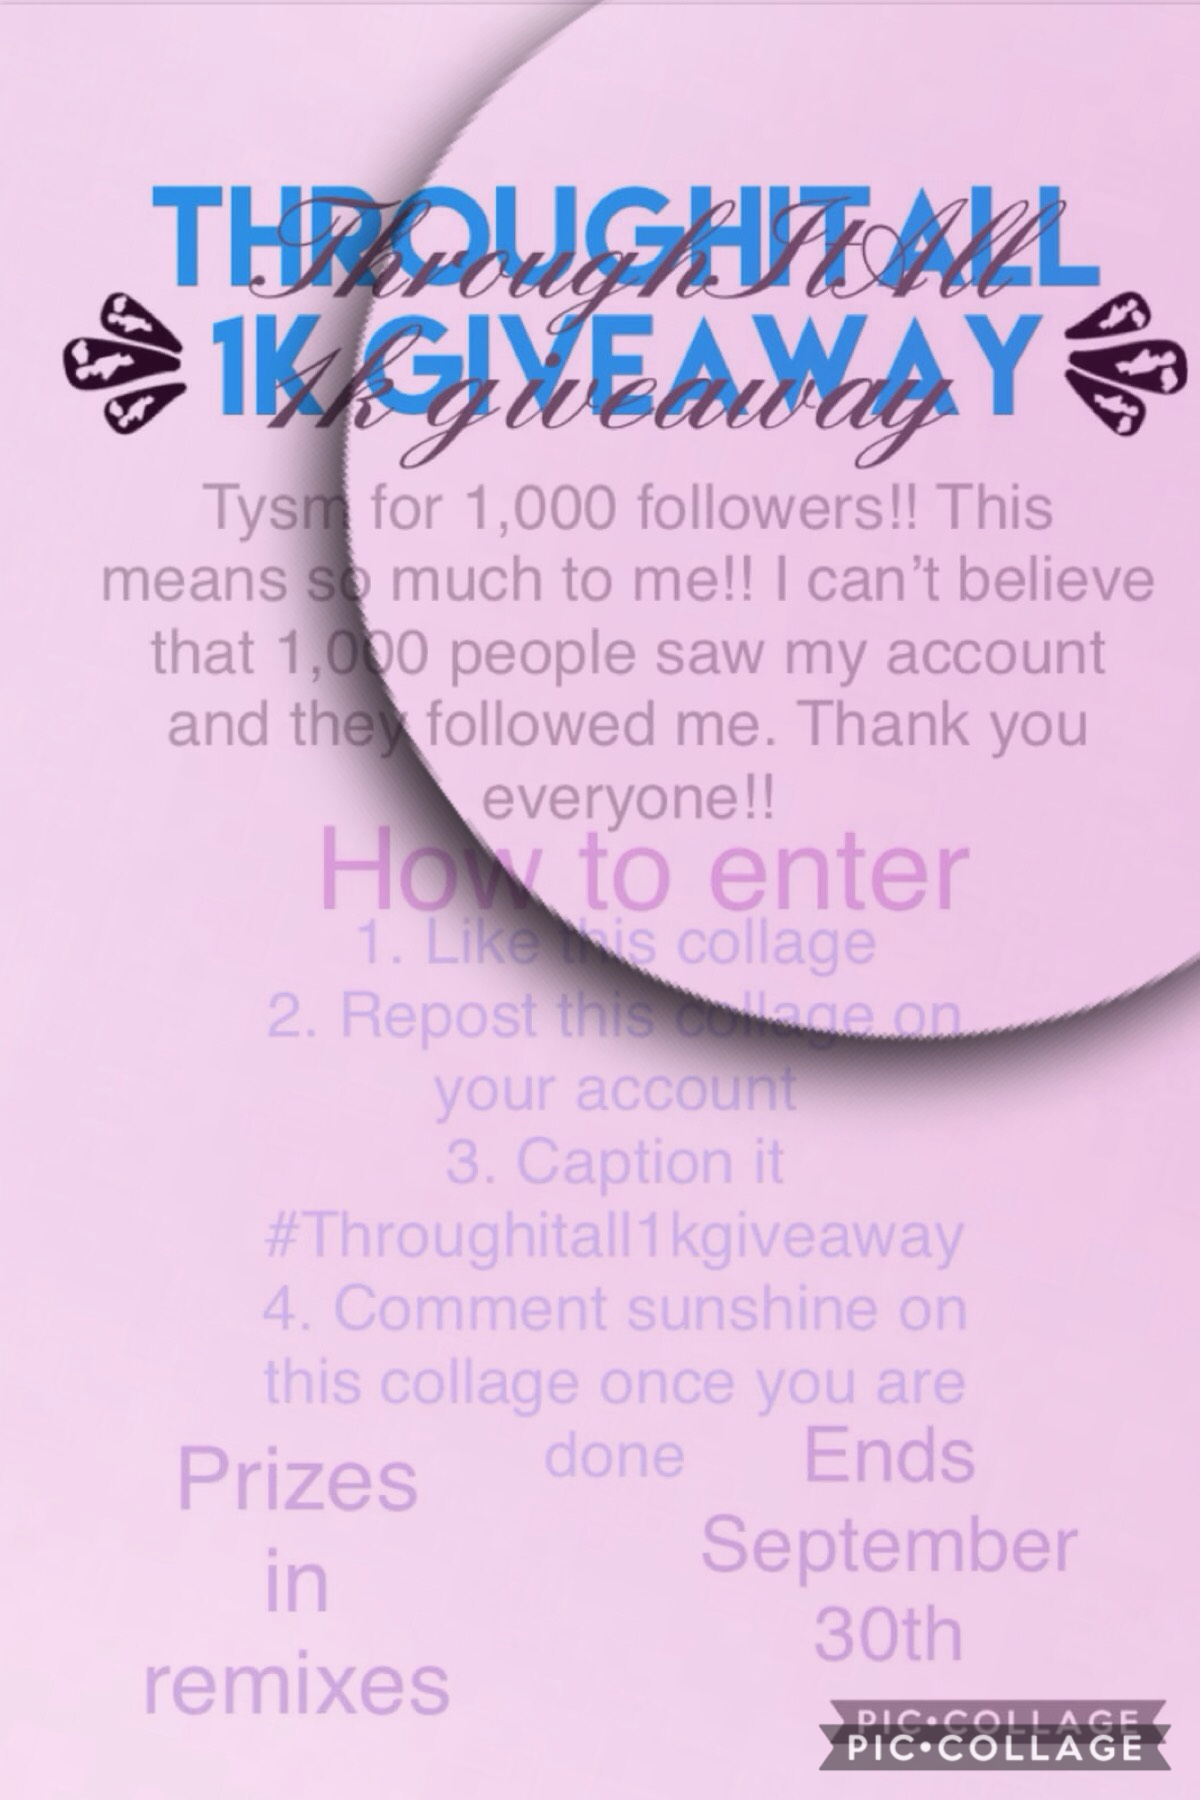 #throughitall1kgiveaway